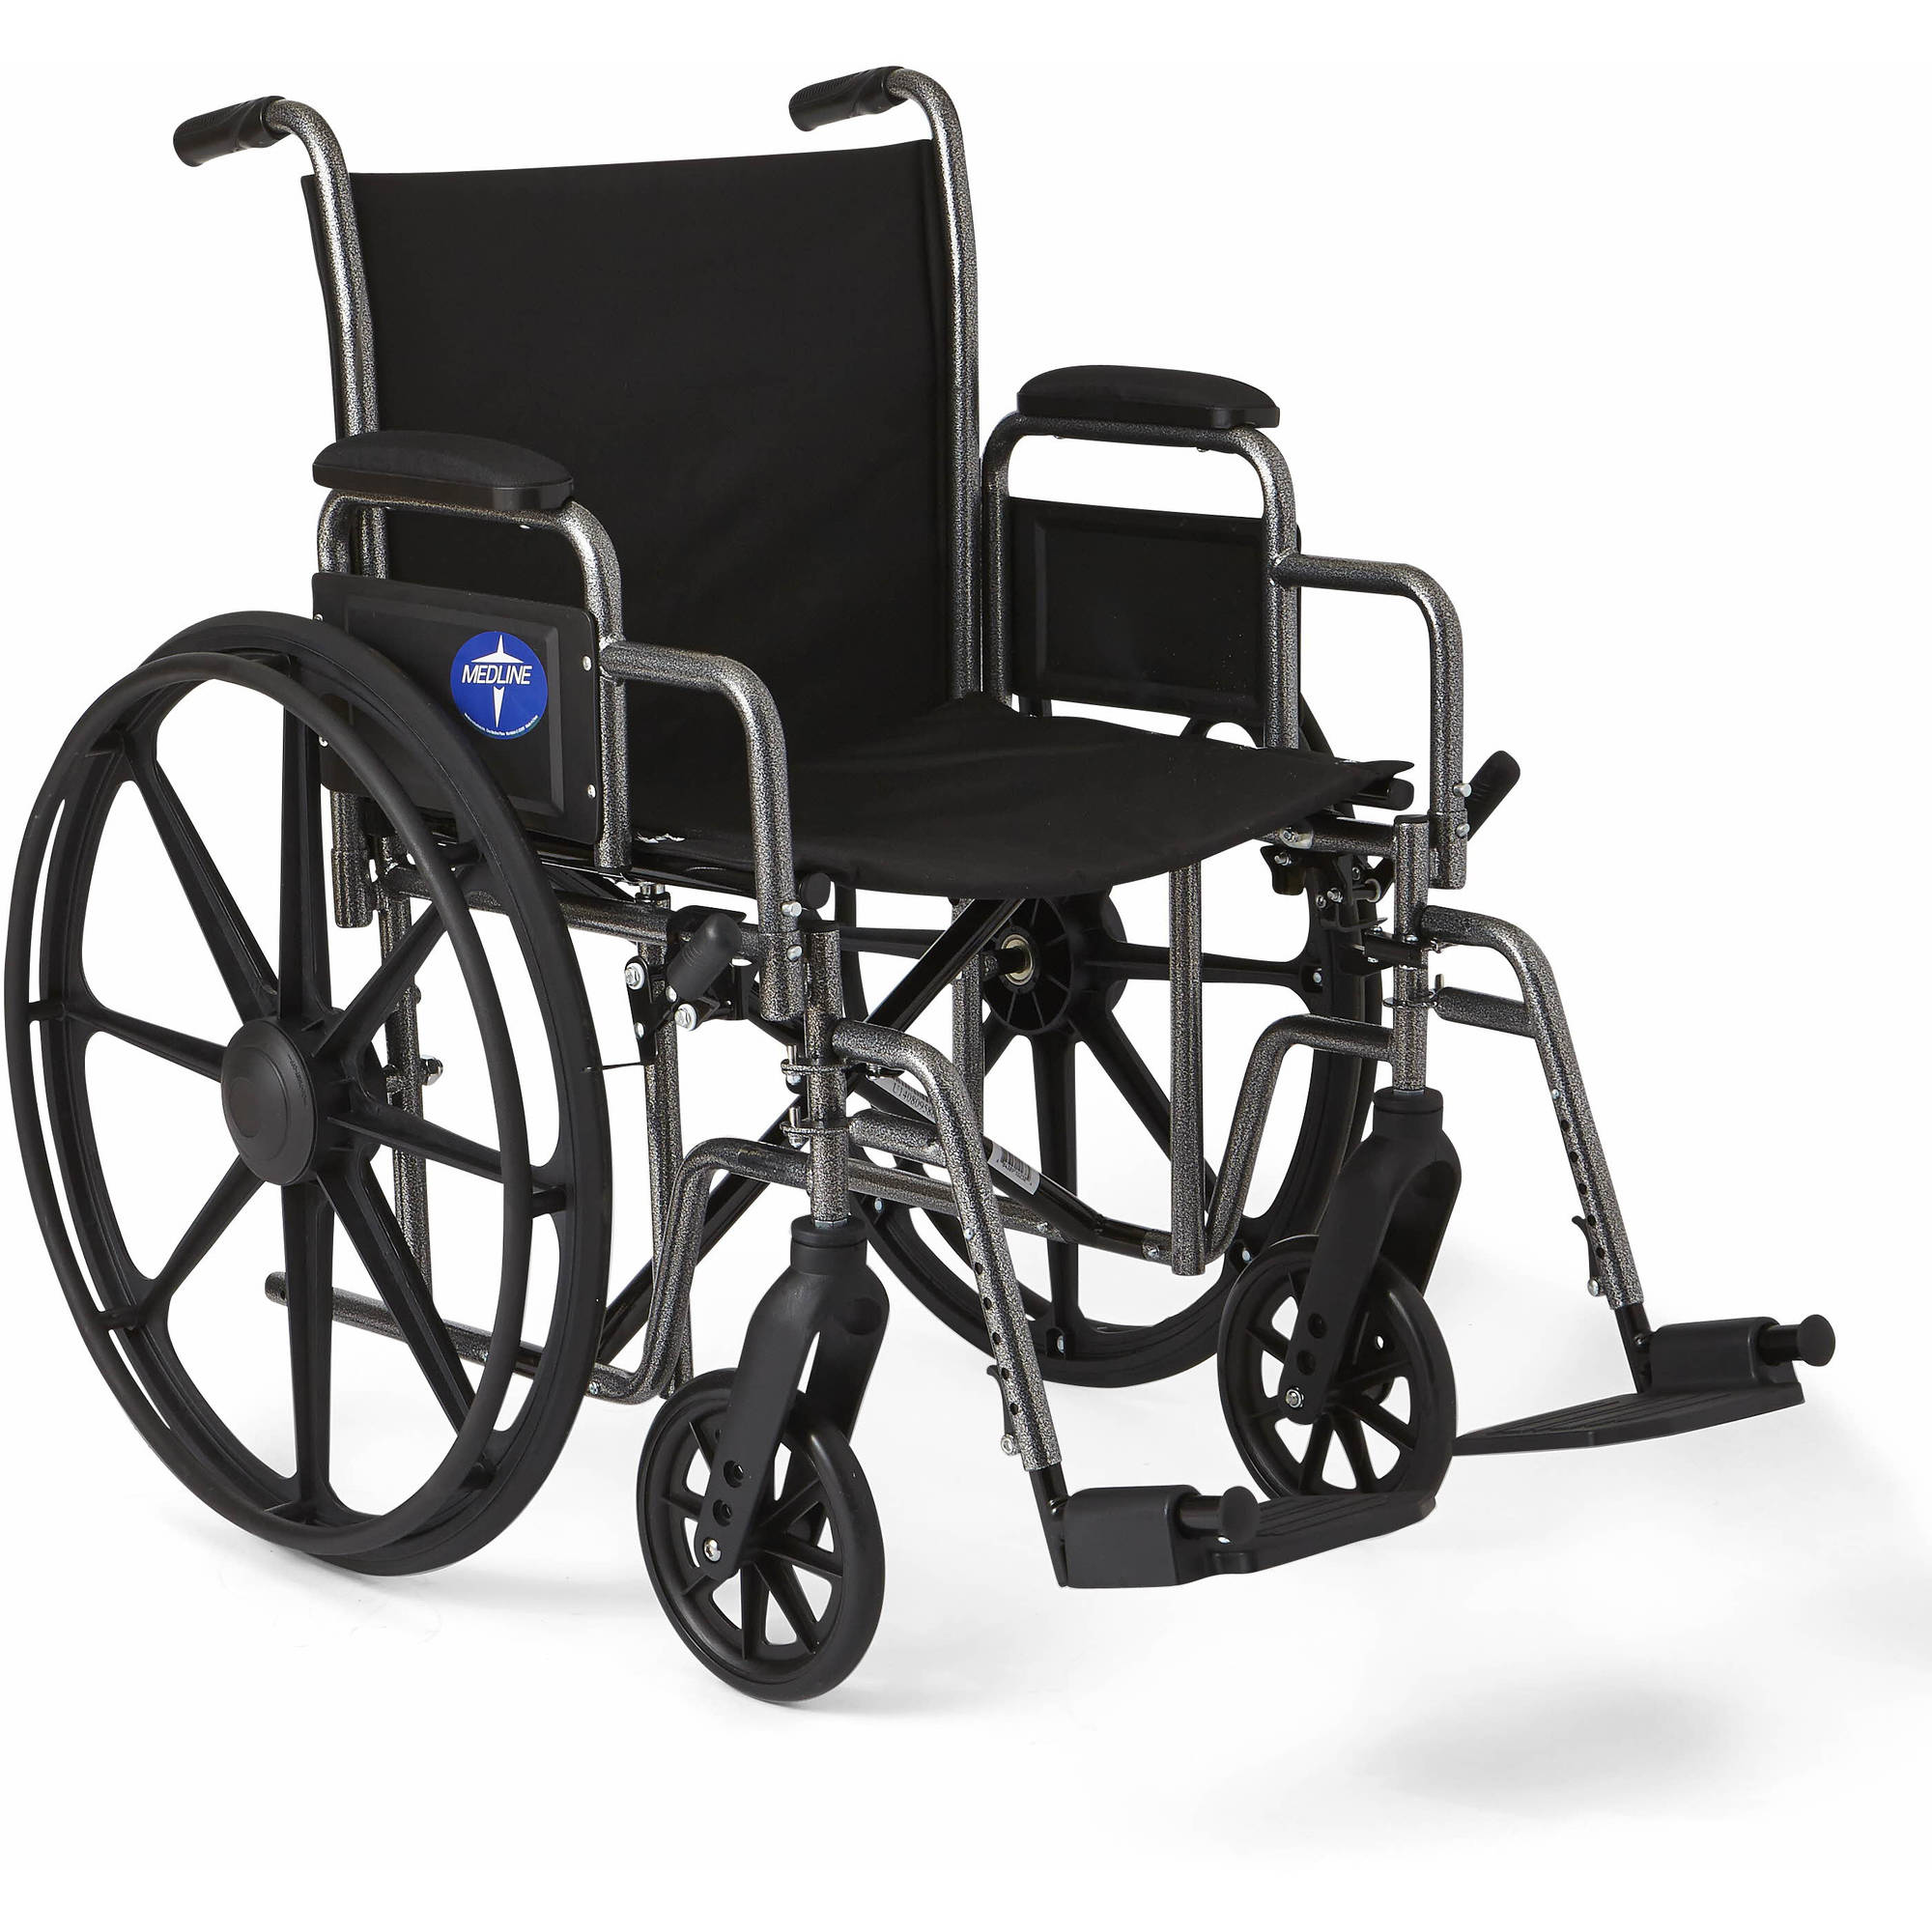 Medline K1 Basic Extra-Wide Wheelchair with Swing Away Footrests